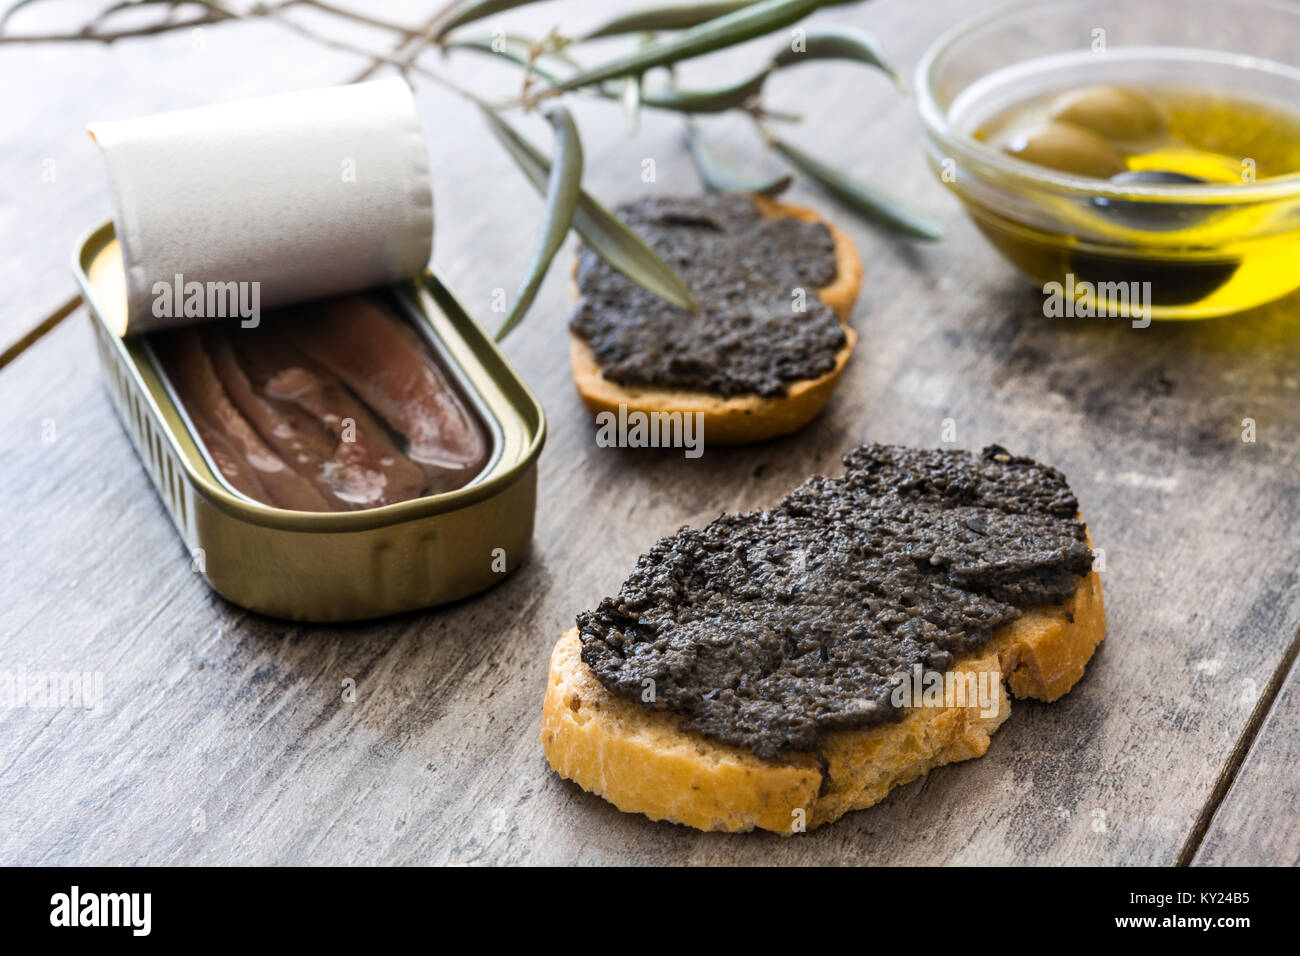 Black olive tapenade with anchovies, garlic and olive oil on wooden table - Stock Image